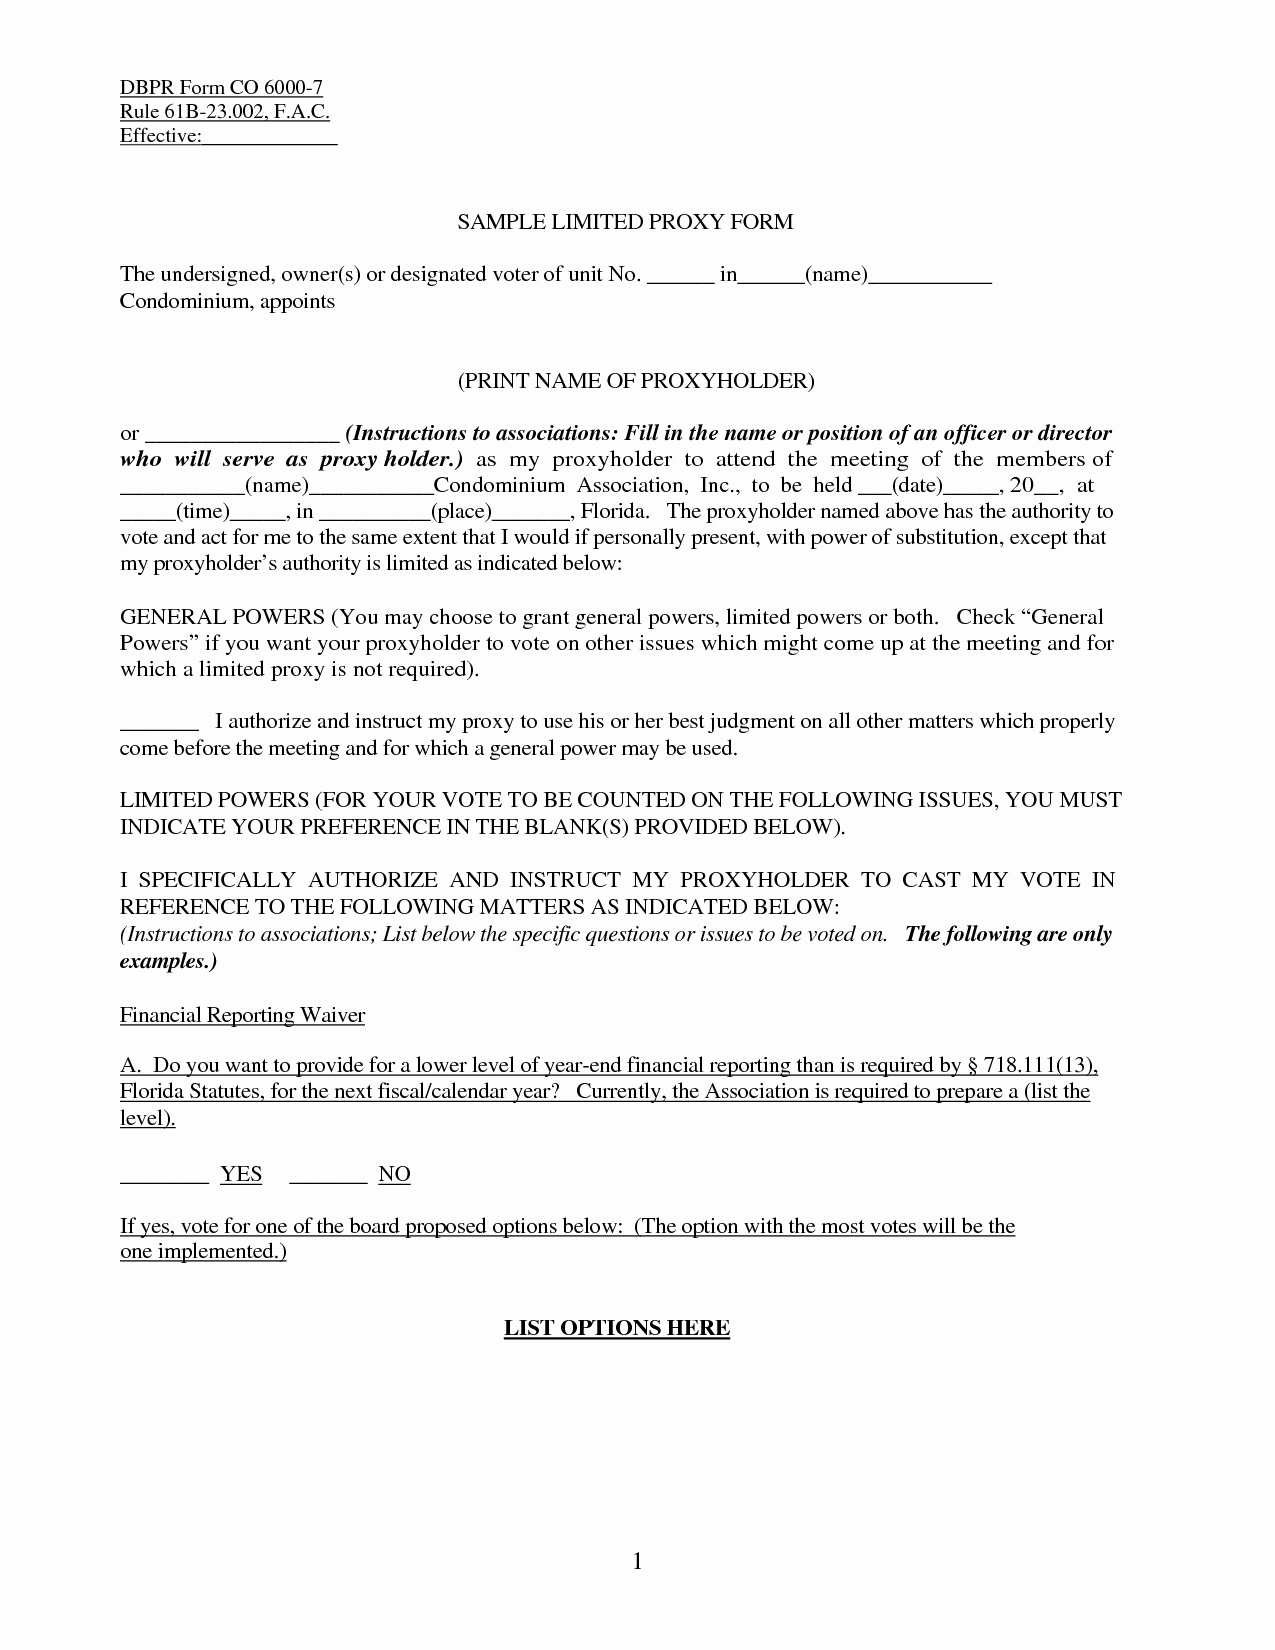 Proxy Voting form Template New Index Of Cdn 3 1994 771